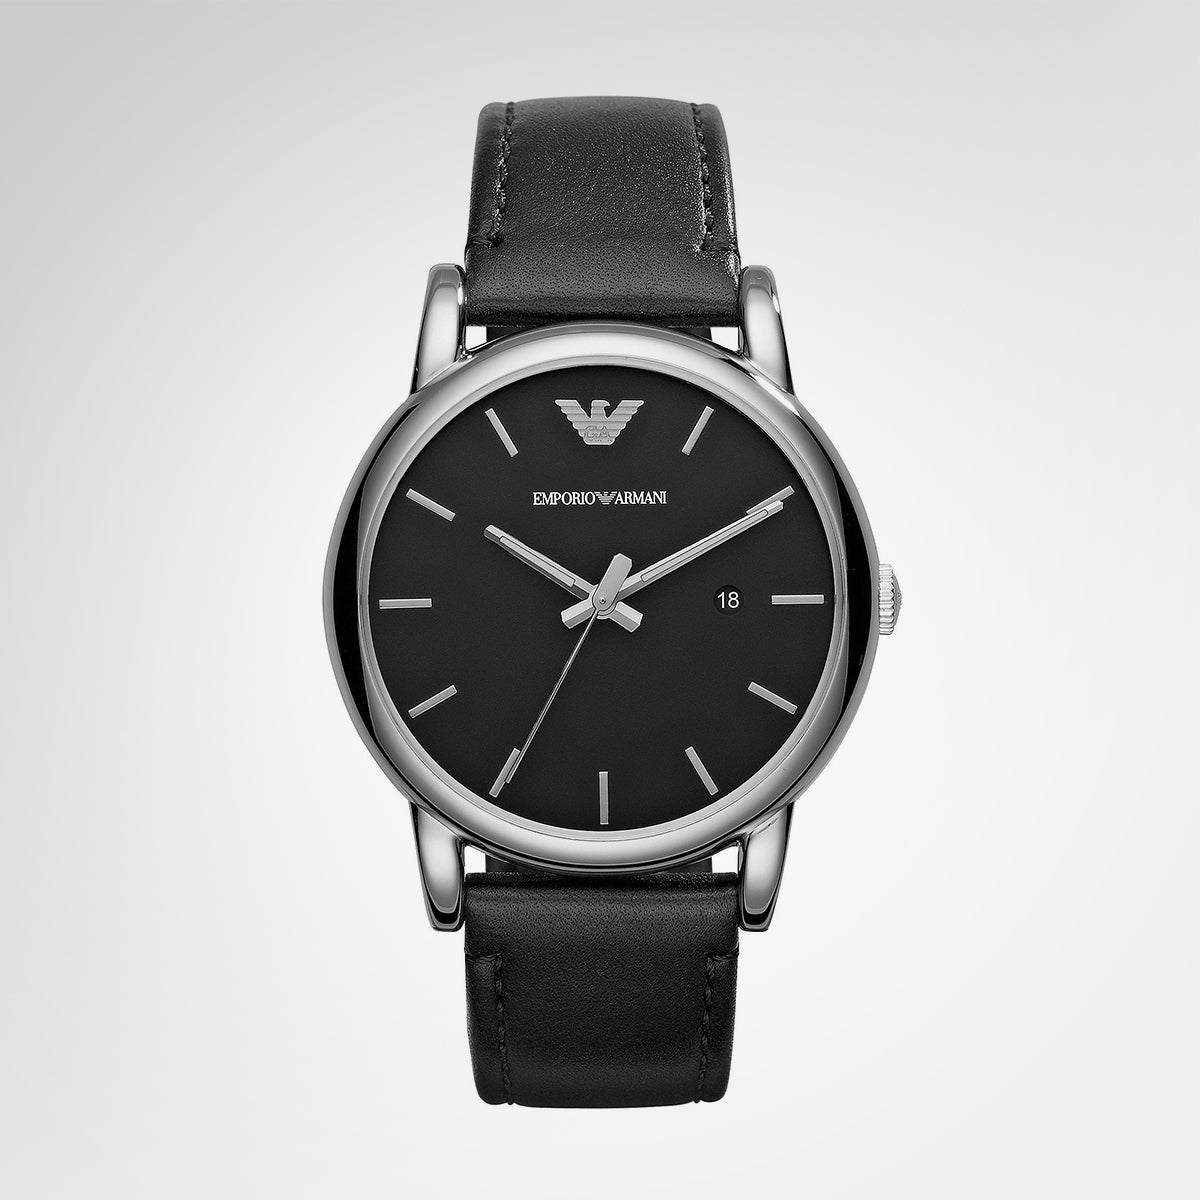 Emporio Armani AR1692 Classic Men's Black Dial Black Leather Strap Quartz Watch